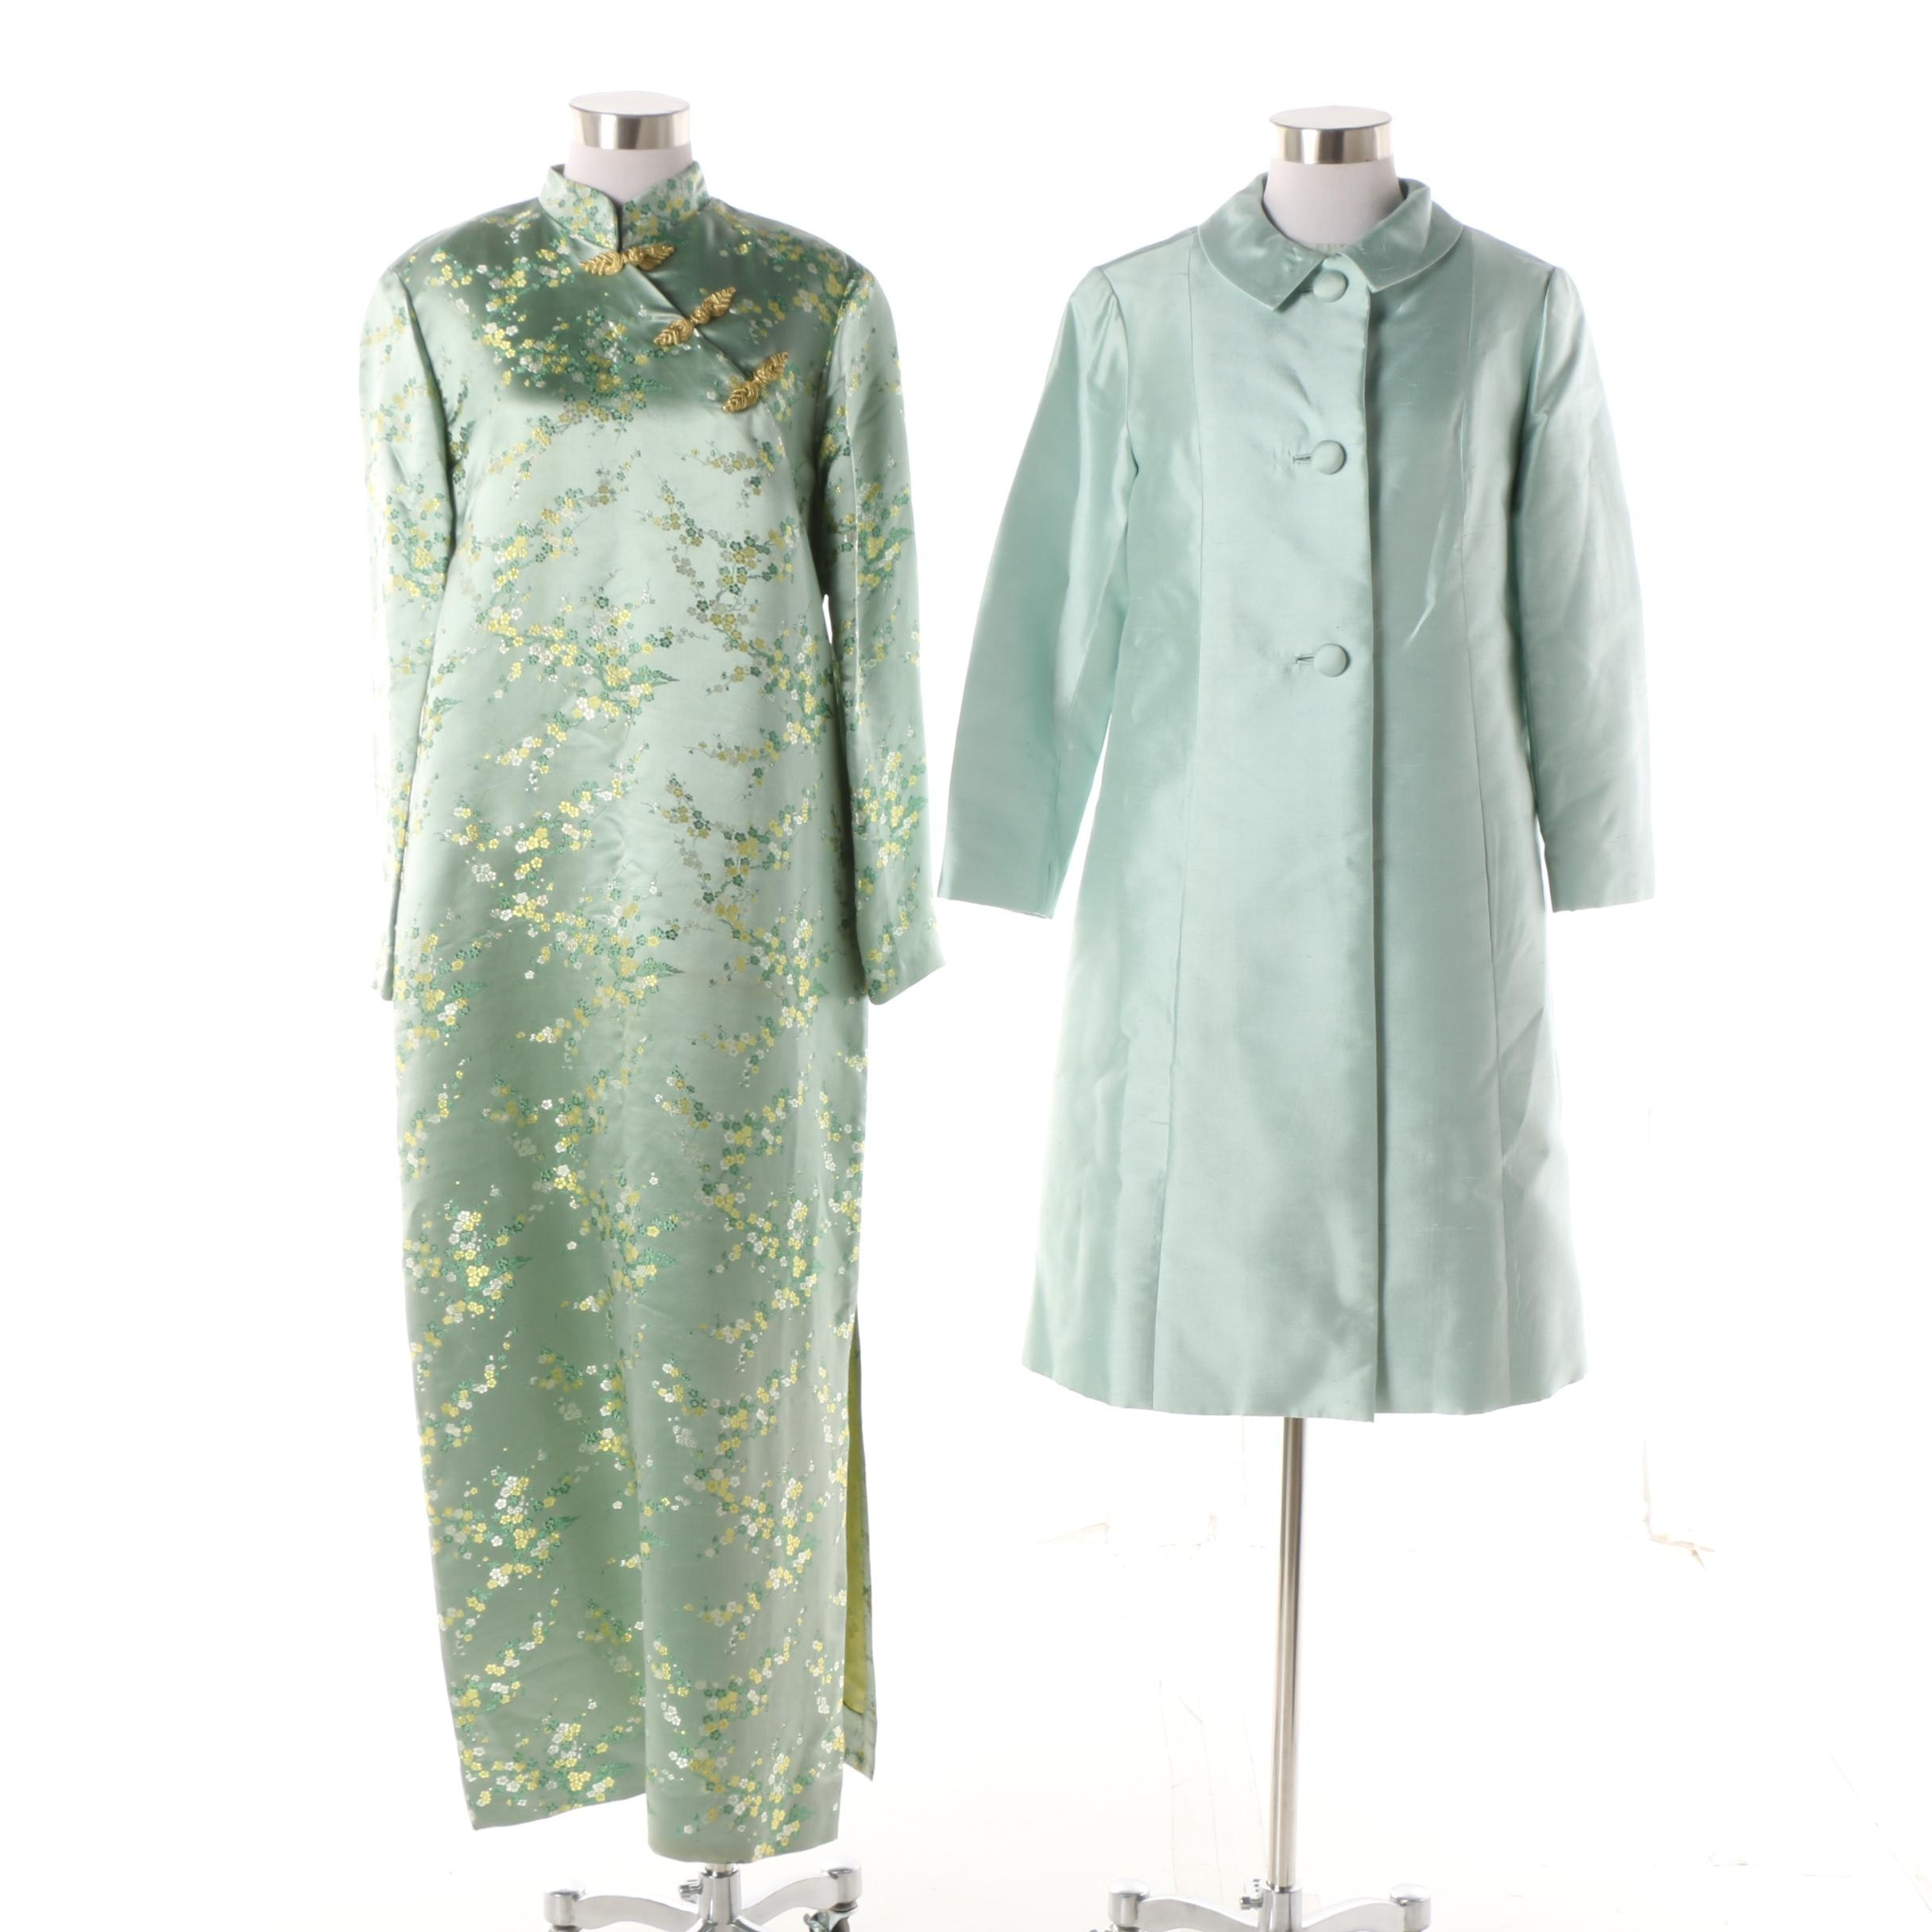 1940s Dynasty Dupioni Silk Dress, Jacket and Chinese Frog Button Brocade Maxi